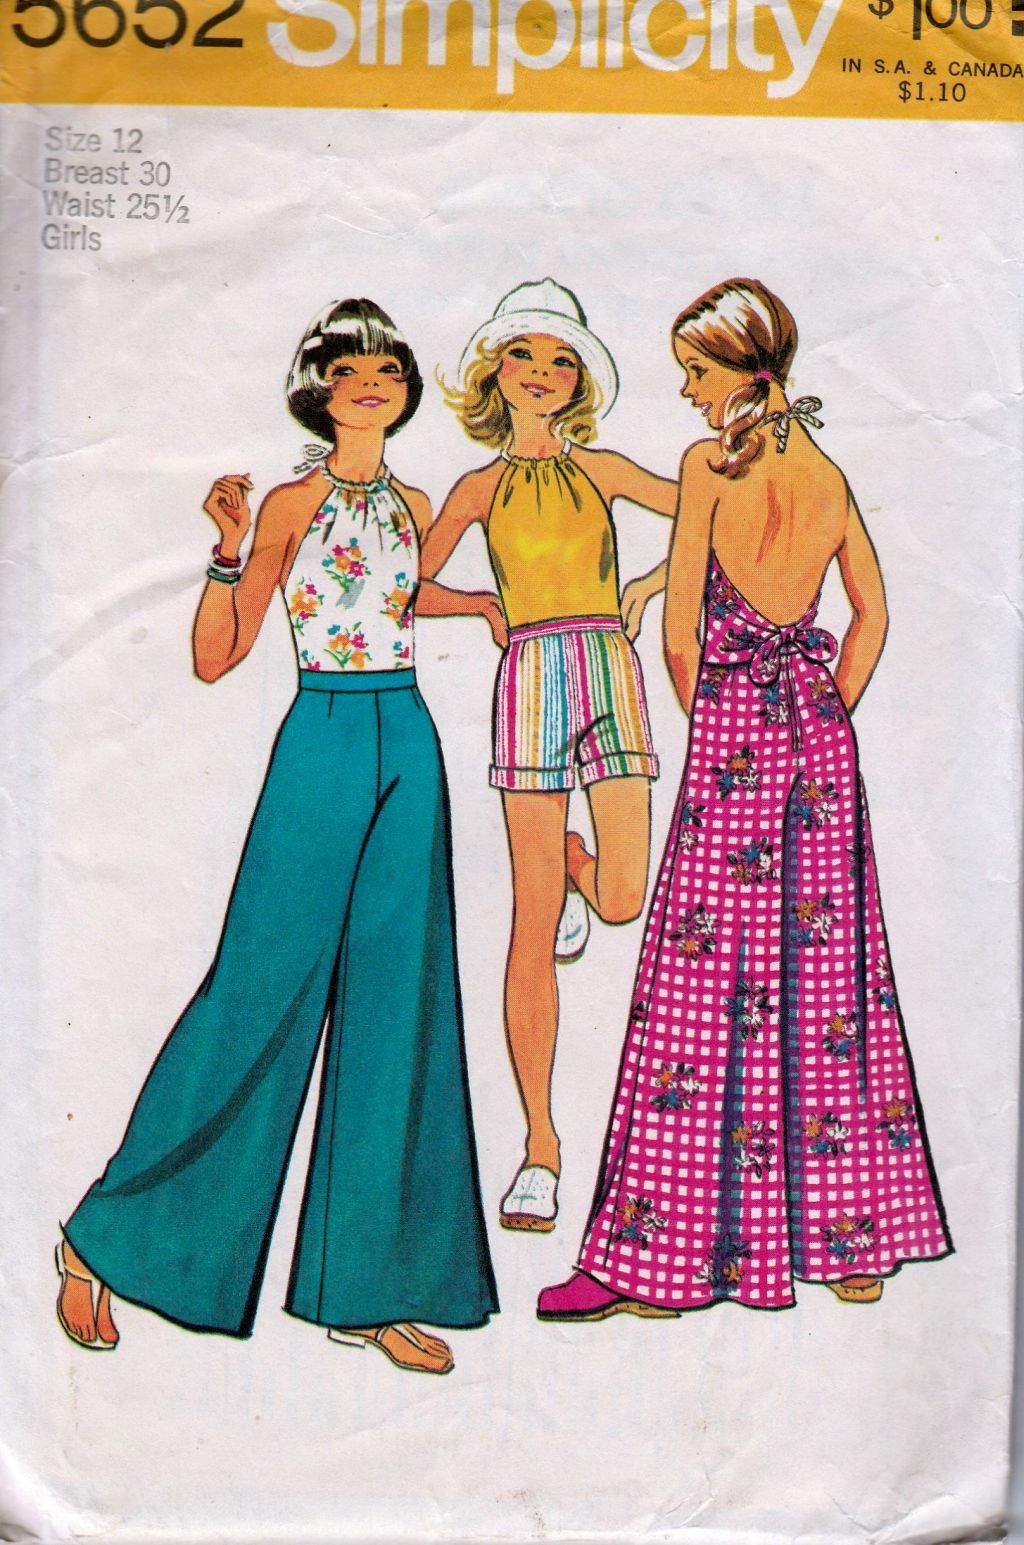 Simplicity 5652 Girls Halter Top Bell Bottom Pants Shorts Vintage 1970's Sewing Pattern - VintageStitching - Vintage Sewing Patterns